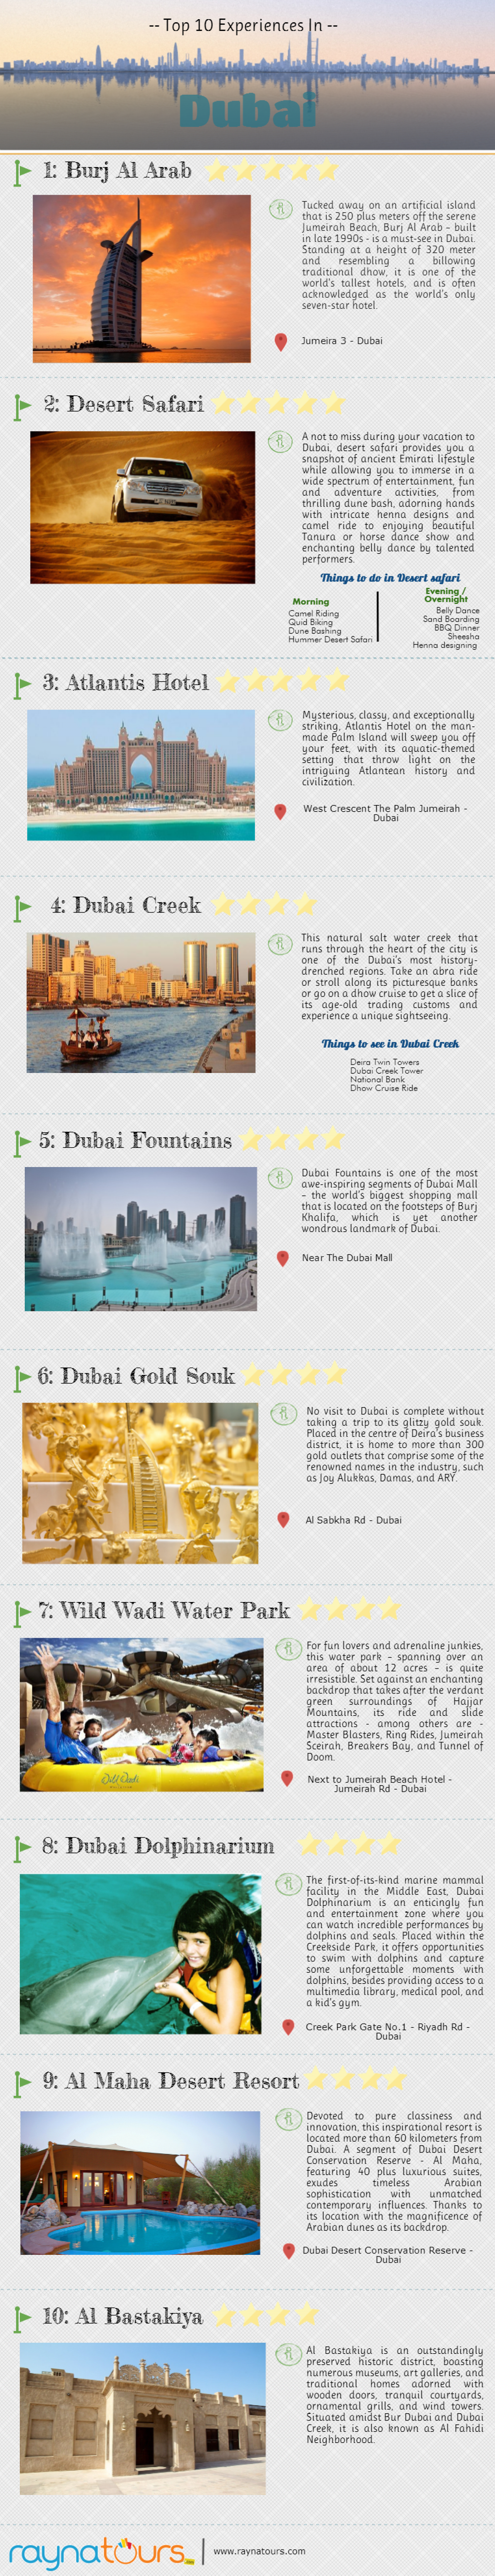 Top 10 Experiences In Dubai Infographic